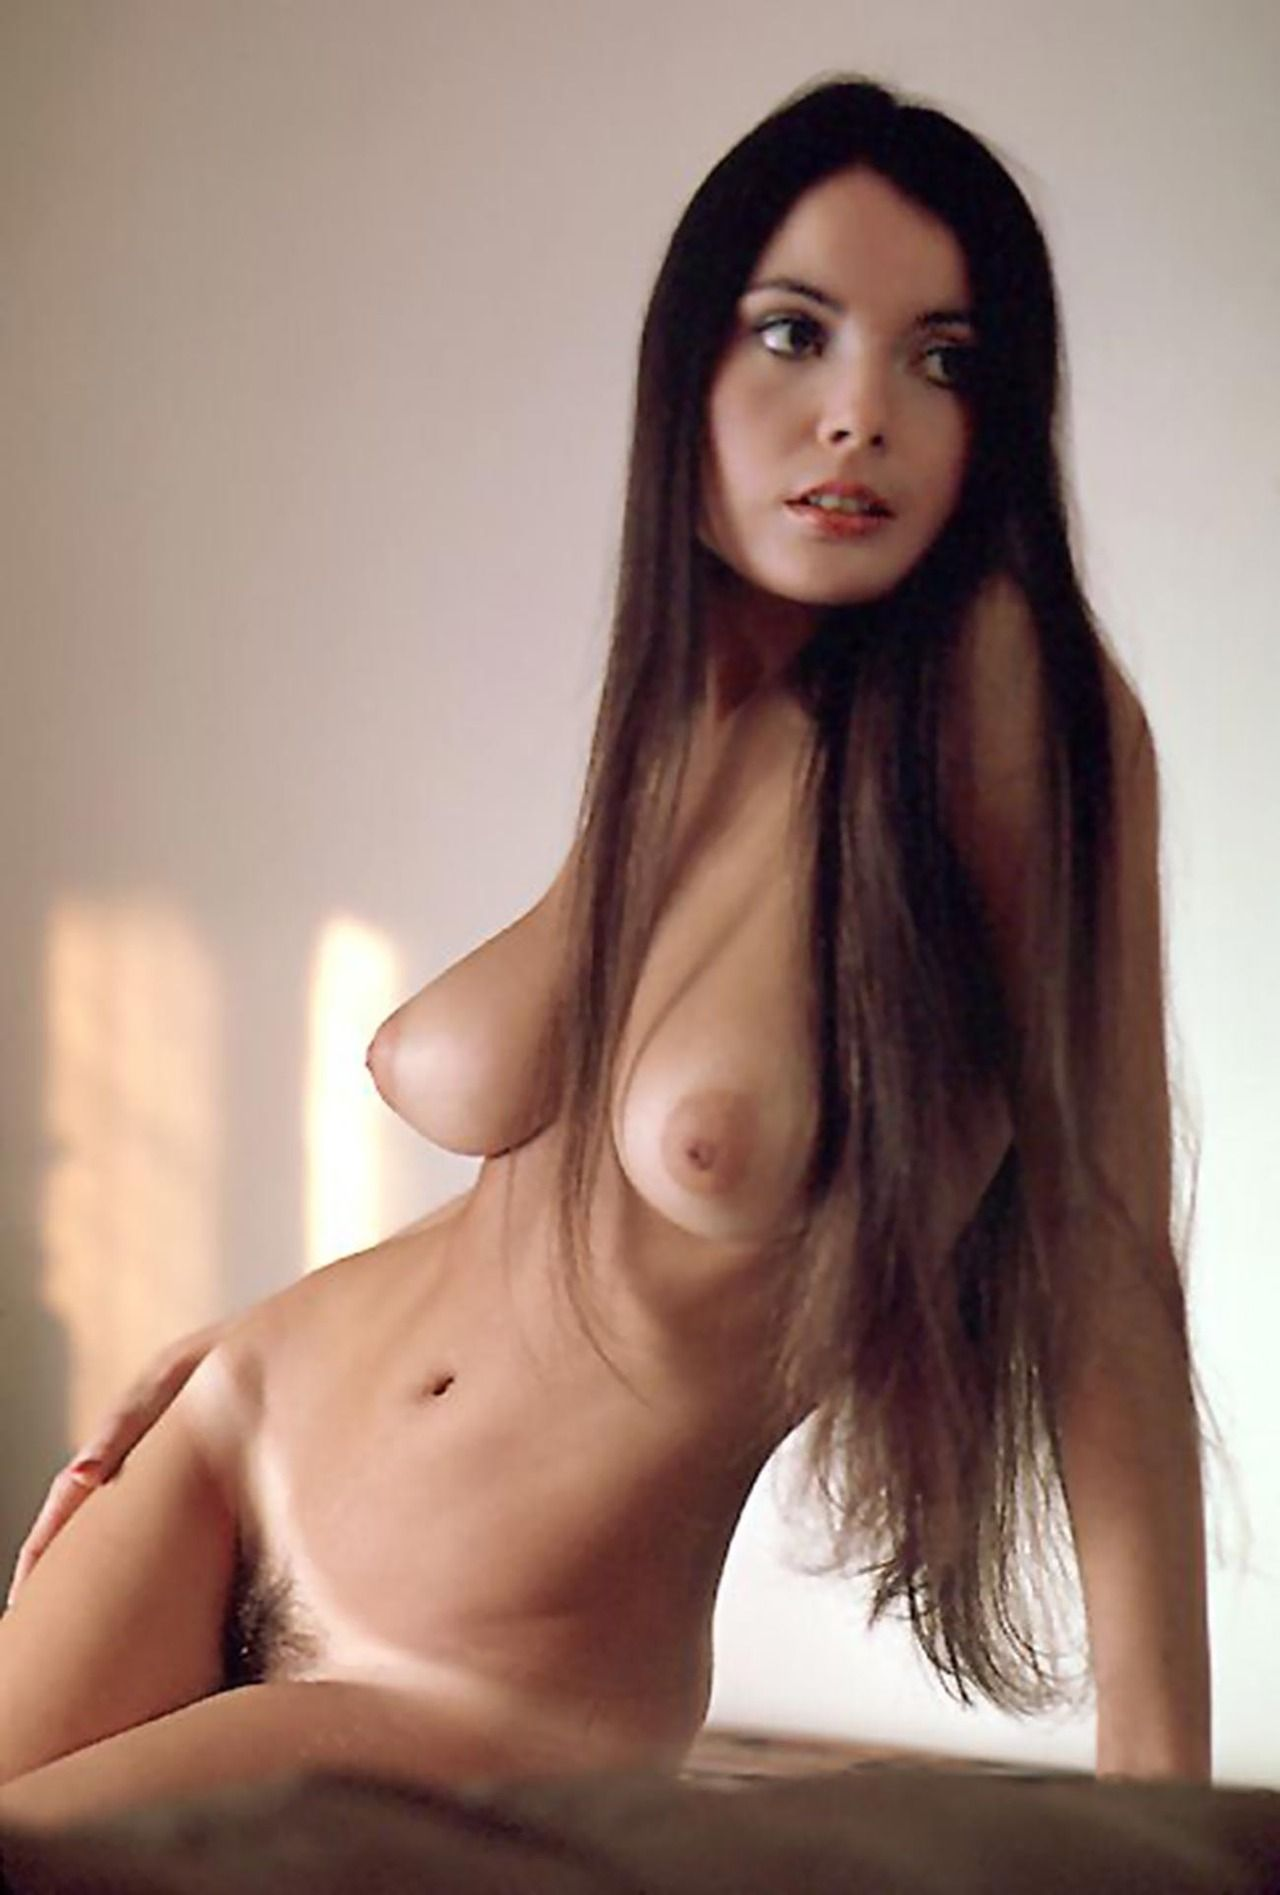 hot nude women supermodels